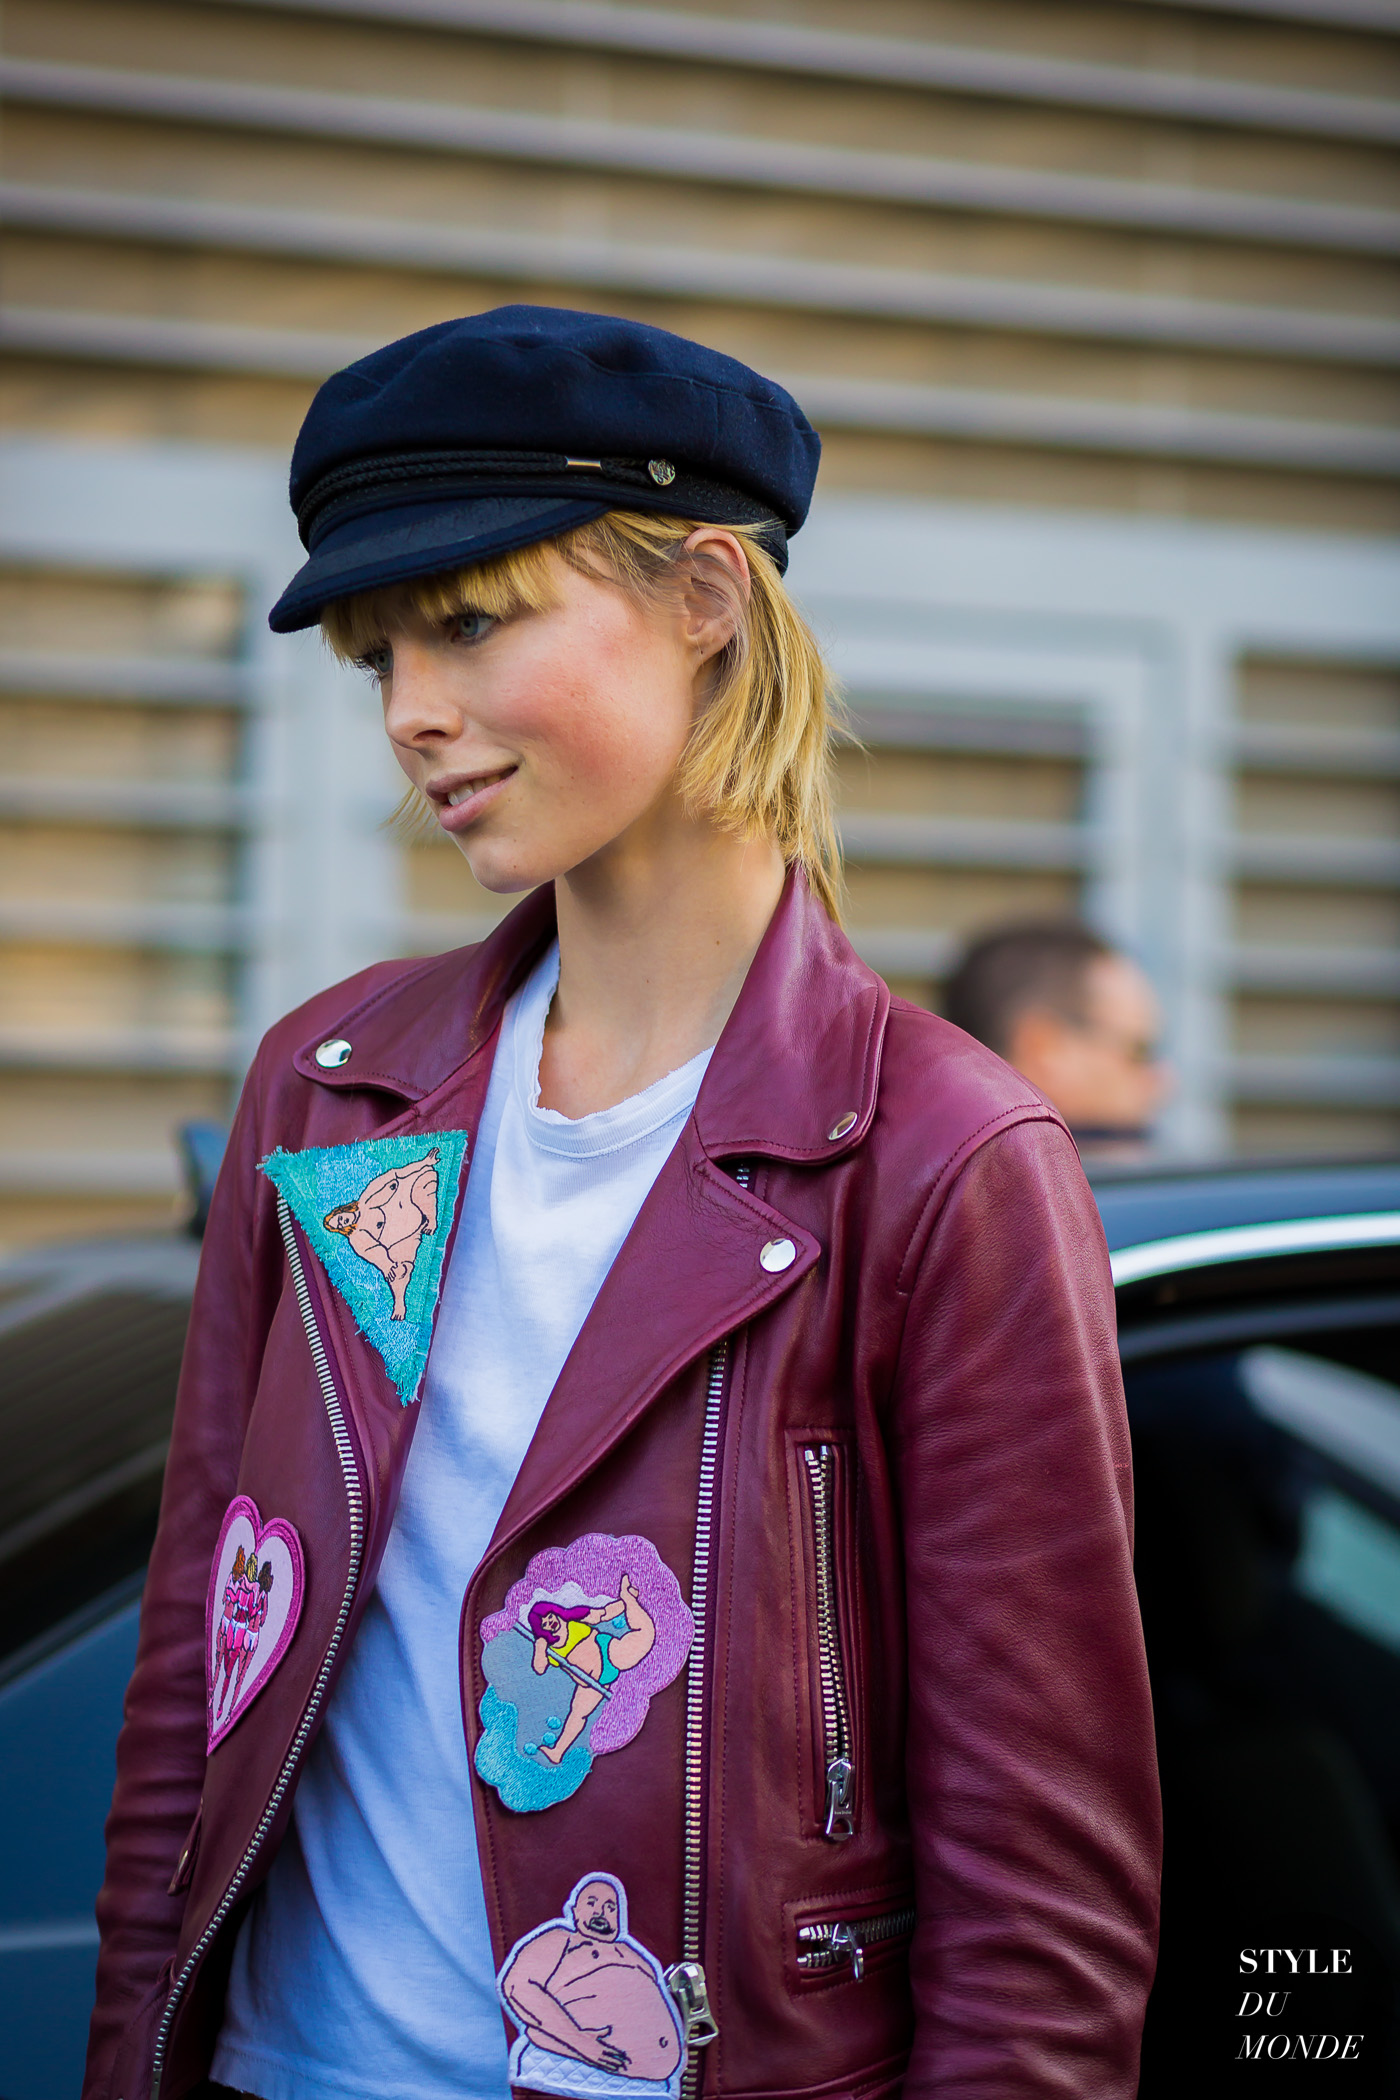 cbeeabd9a6b0 Edie Campbell Street Style Street Fashion Streetsnaps by STYLEDUMONDE  Street Style Fashion Photography